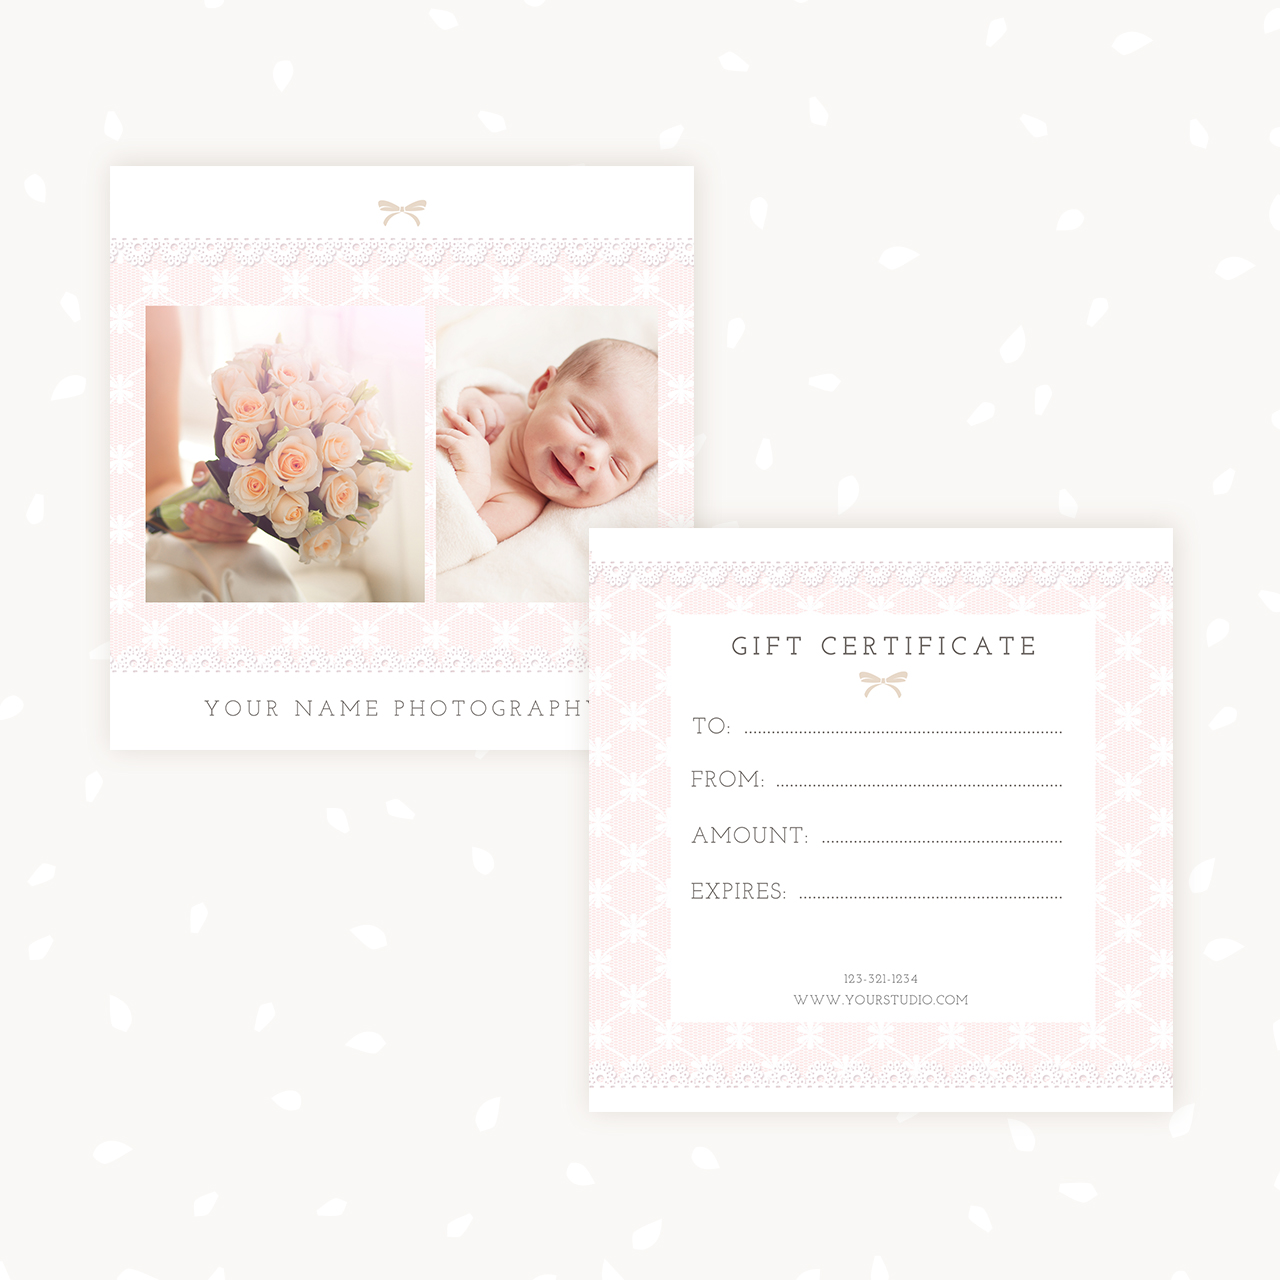 gift certificate template photoshop - gift certificate template lace strawberry kit